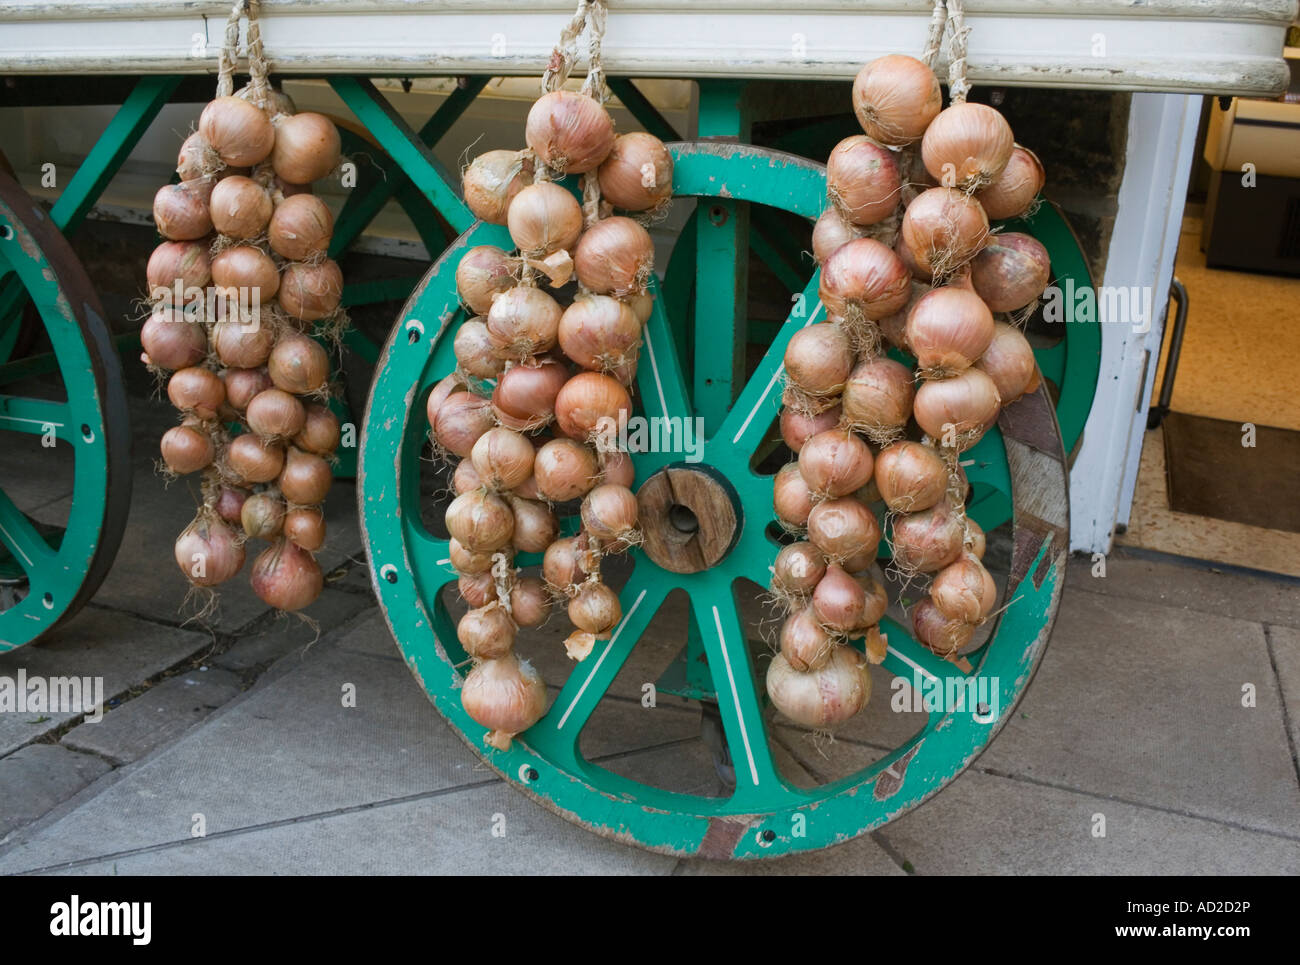 Strings of onions on sale outside grocers shop - Stock Image